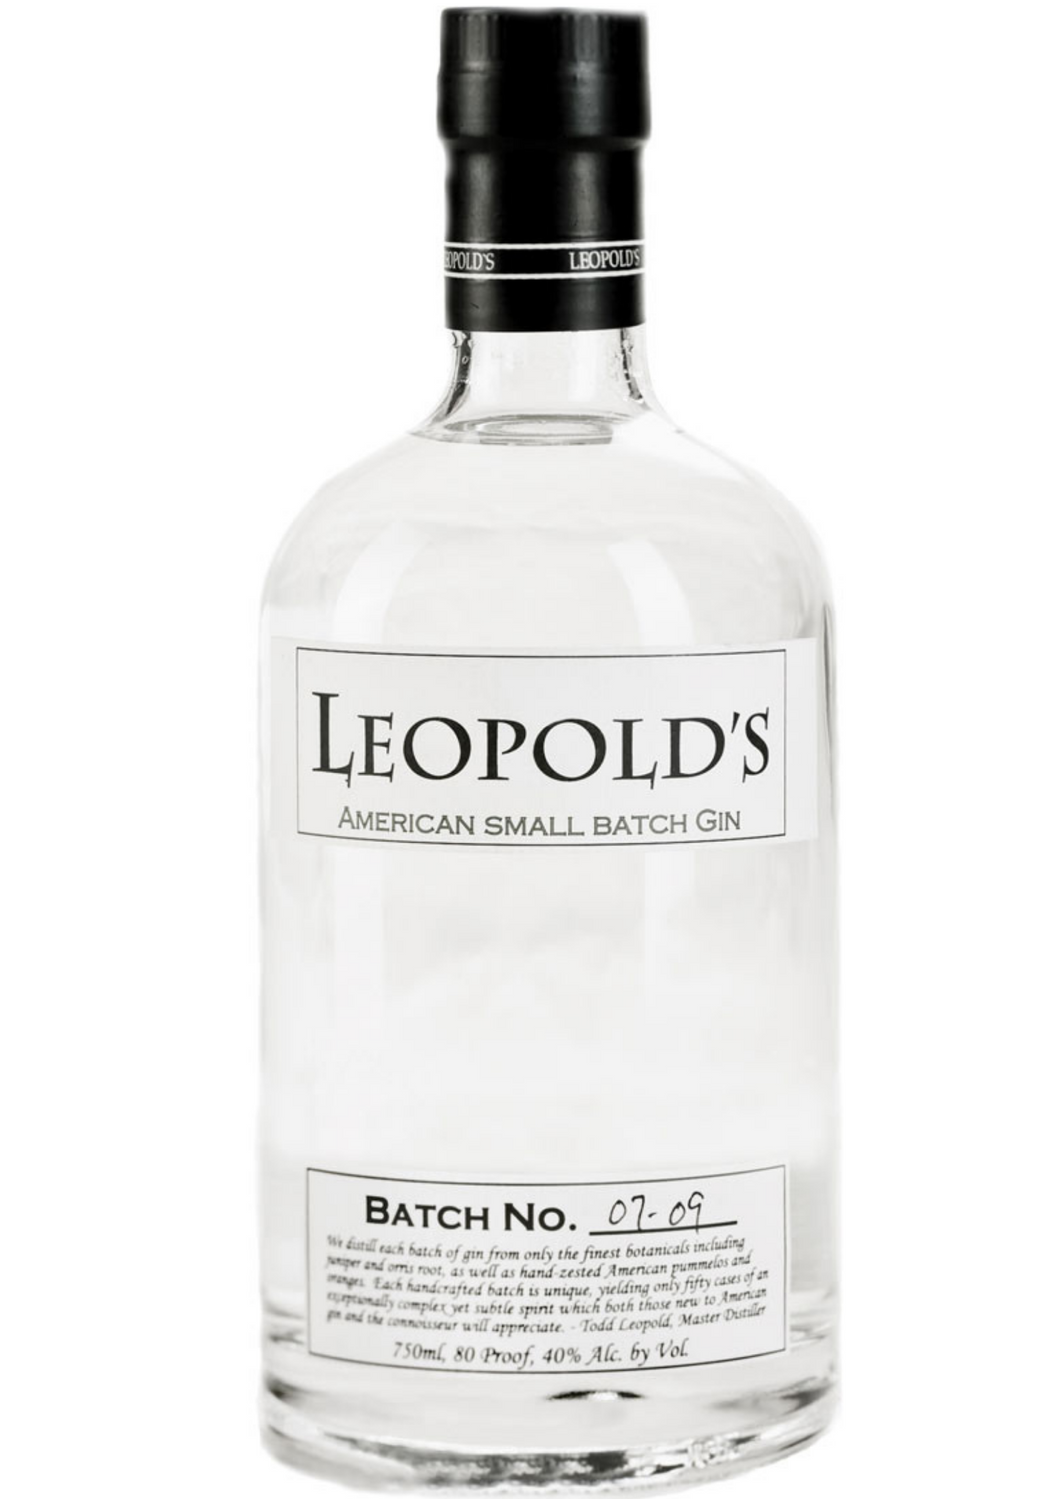 Leopolds Small Batch Gin